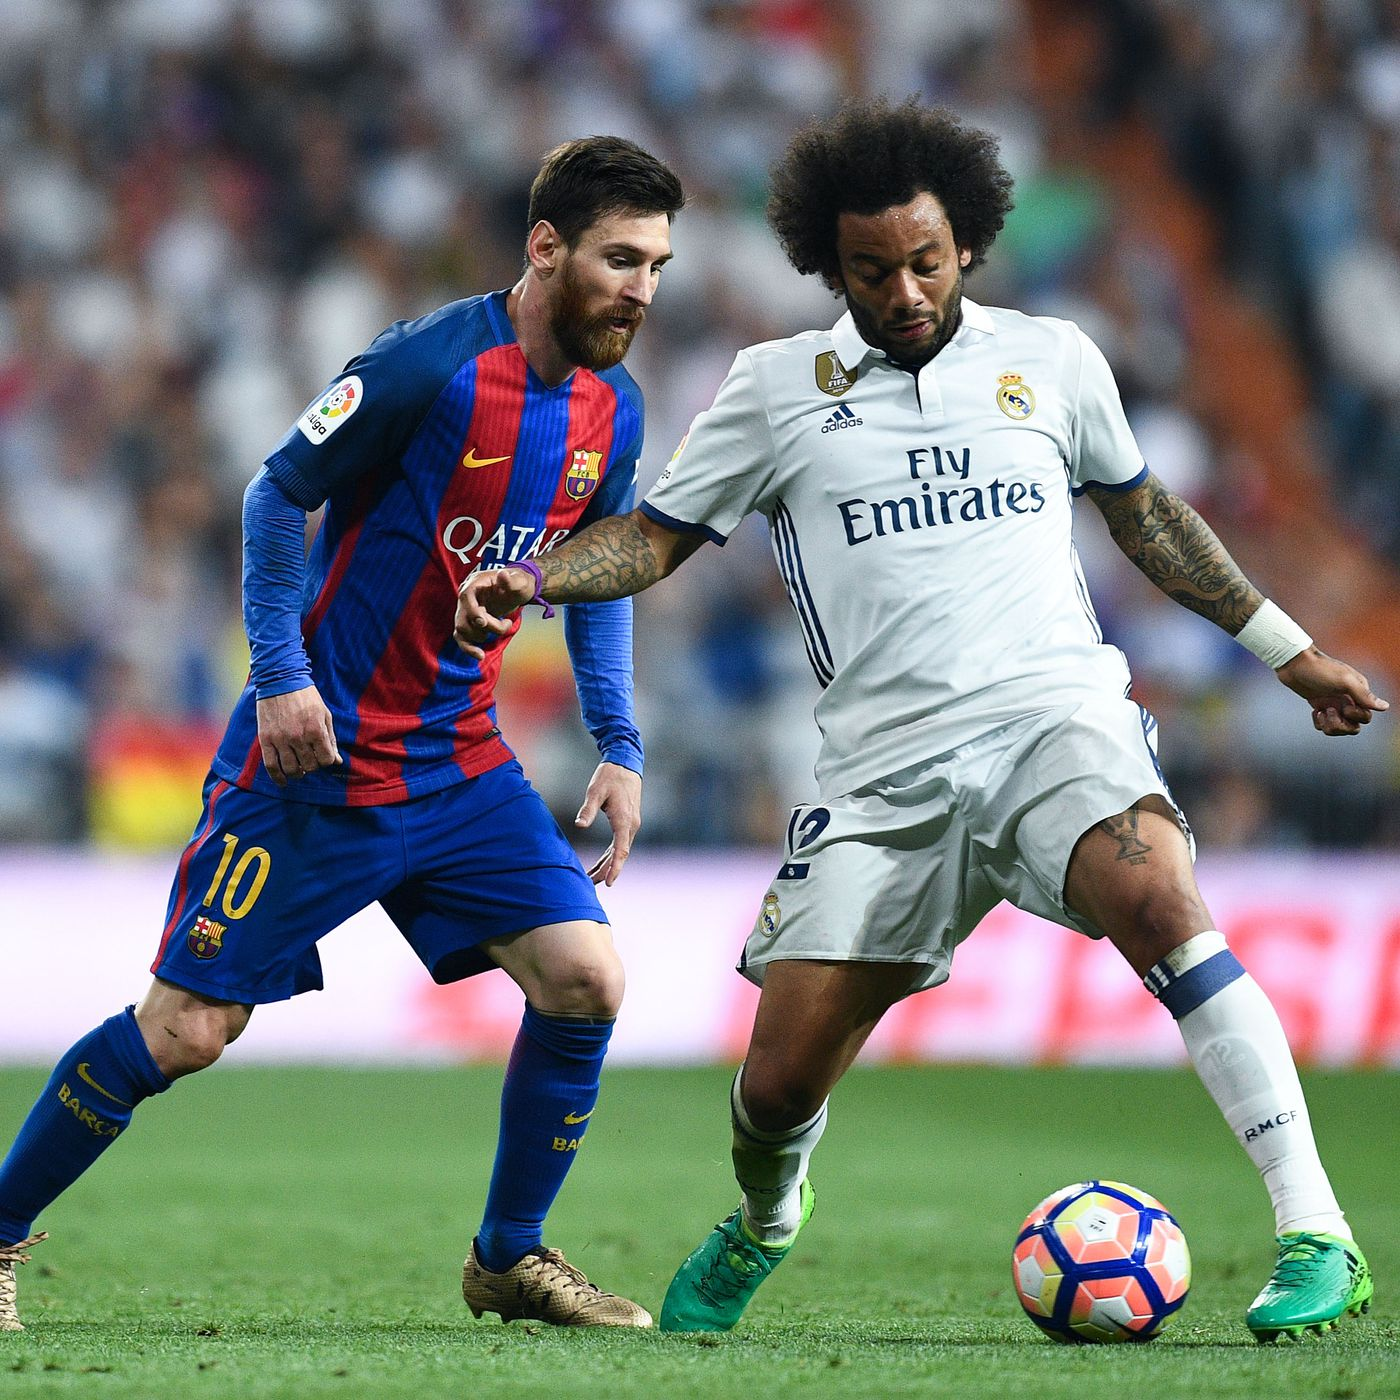 Semi De Suora Classy barcelona vs. real madrid live stream: game time, tv listings, and